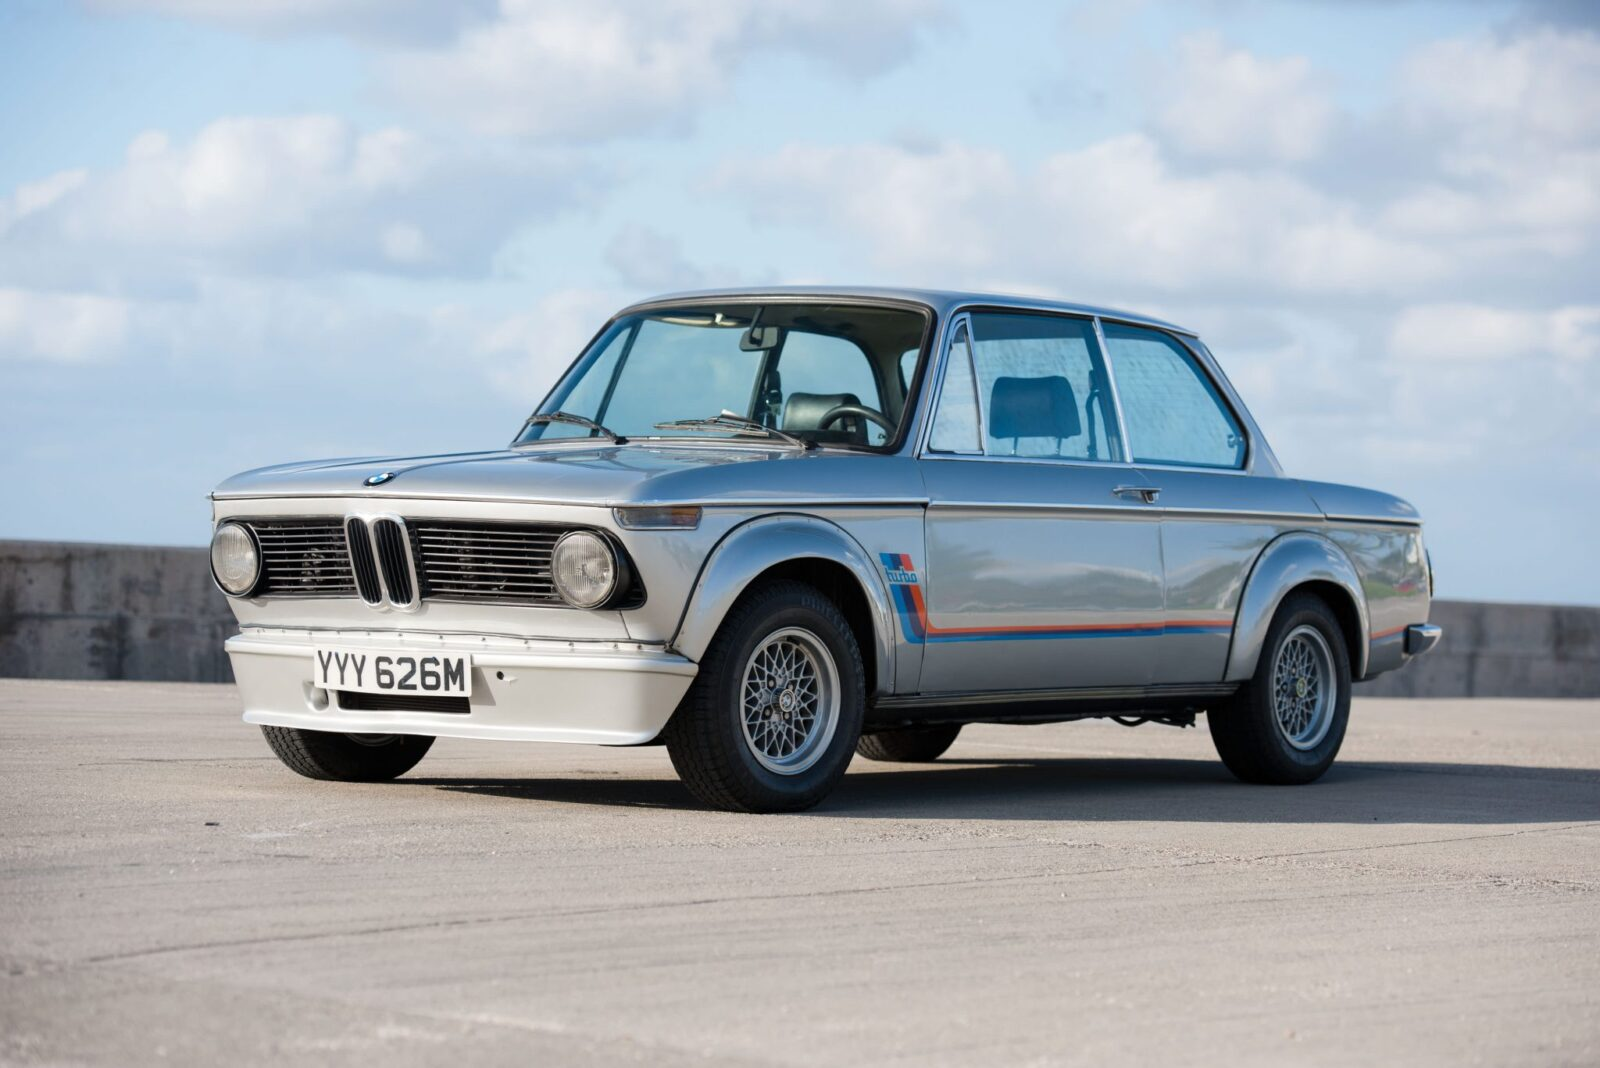 FL15 r0430 01 1600x1068 - BMW 2002 Turbo